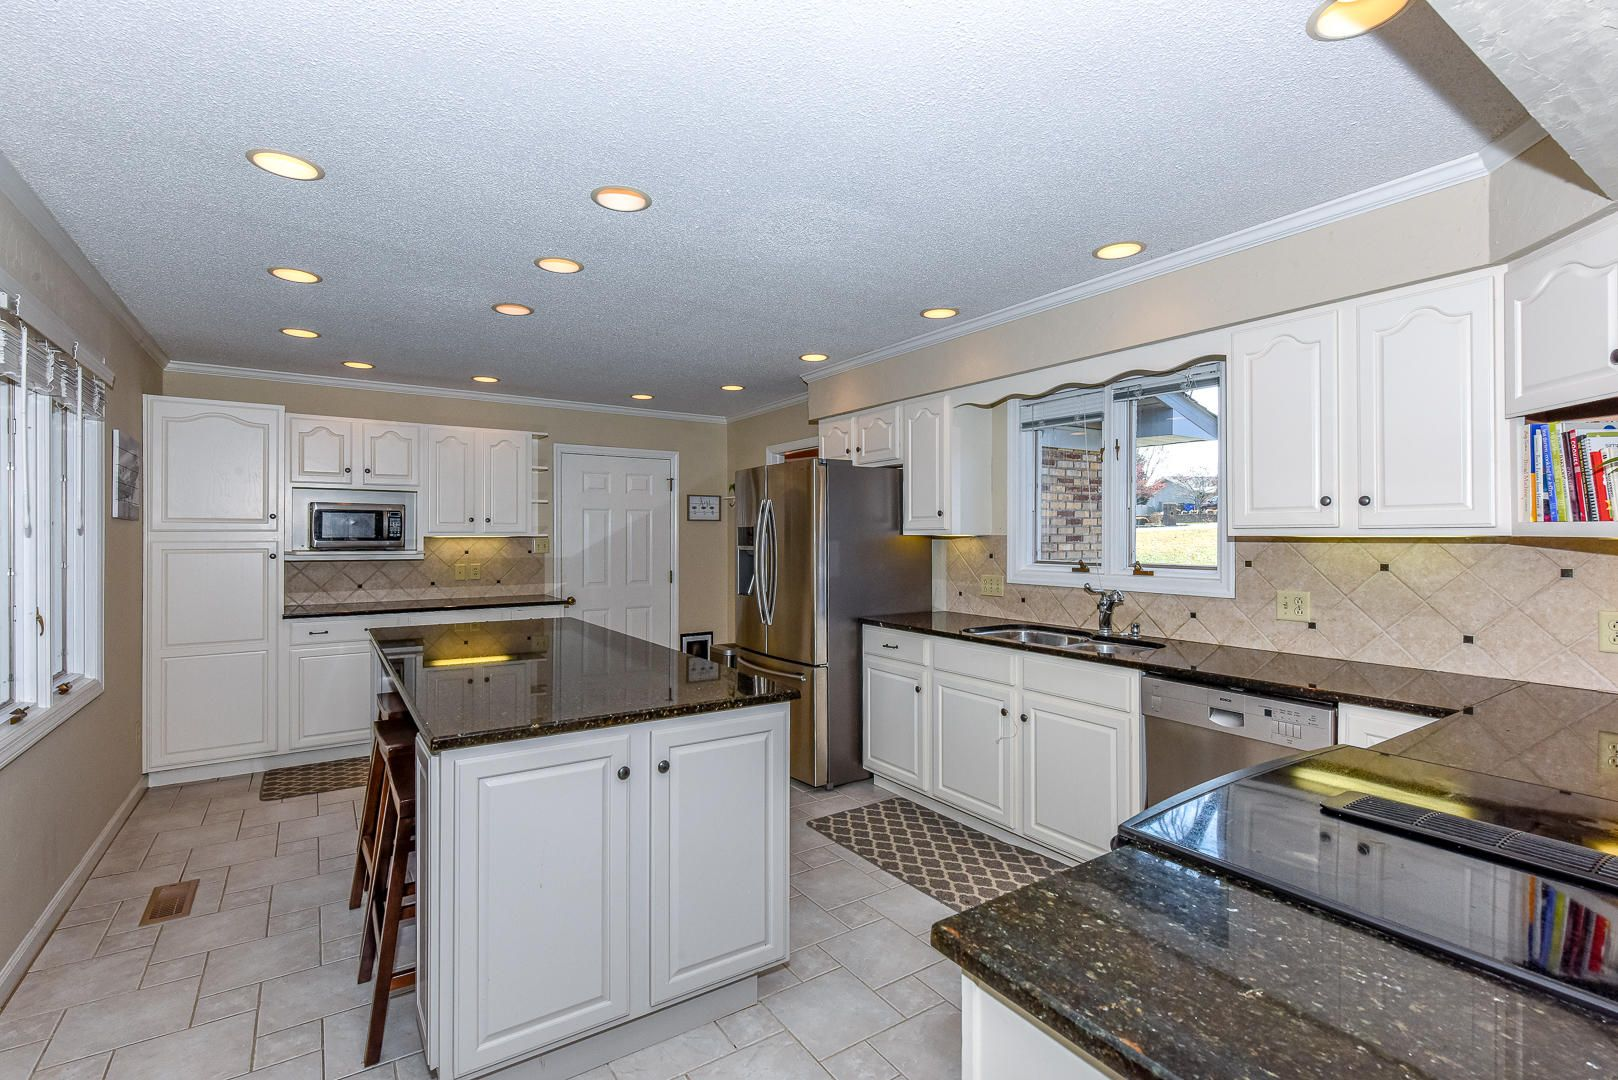 Great Cabinet & Countertop Space